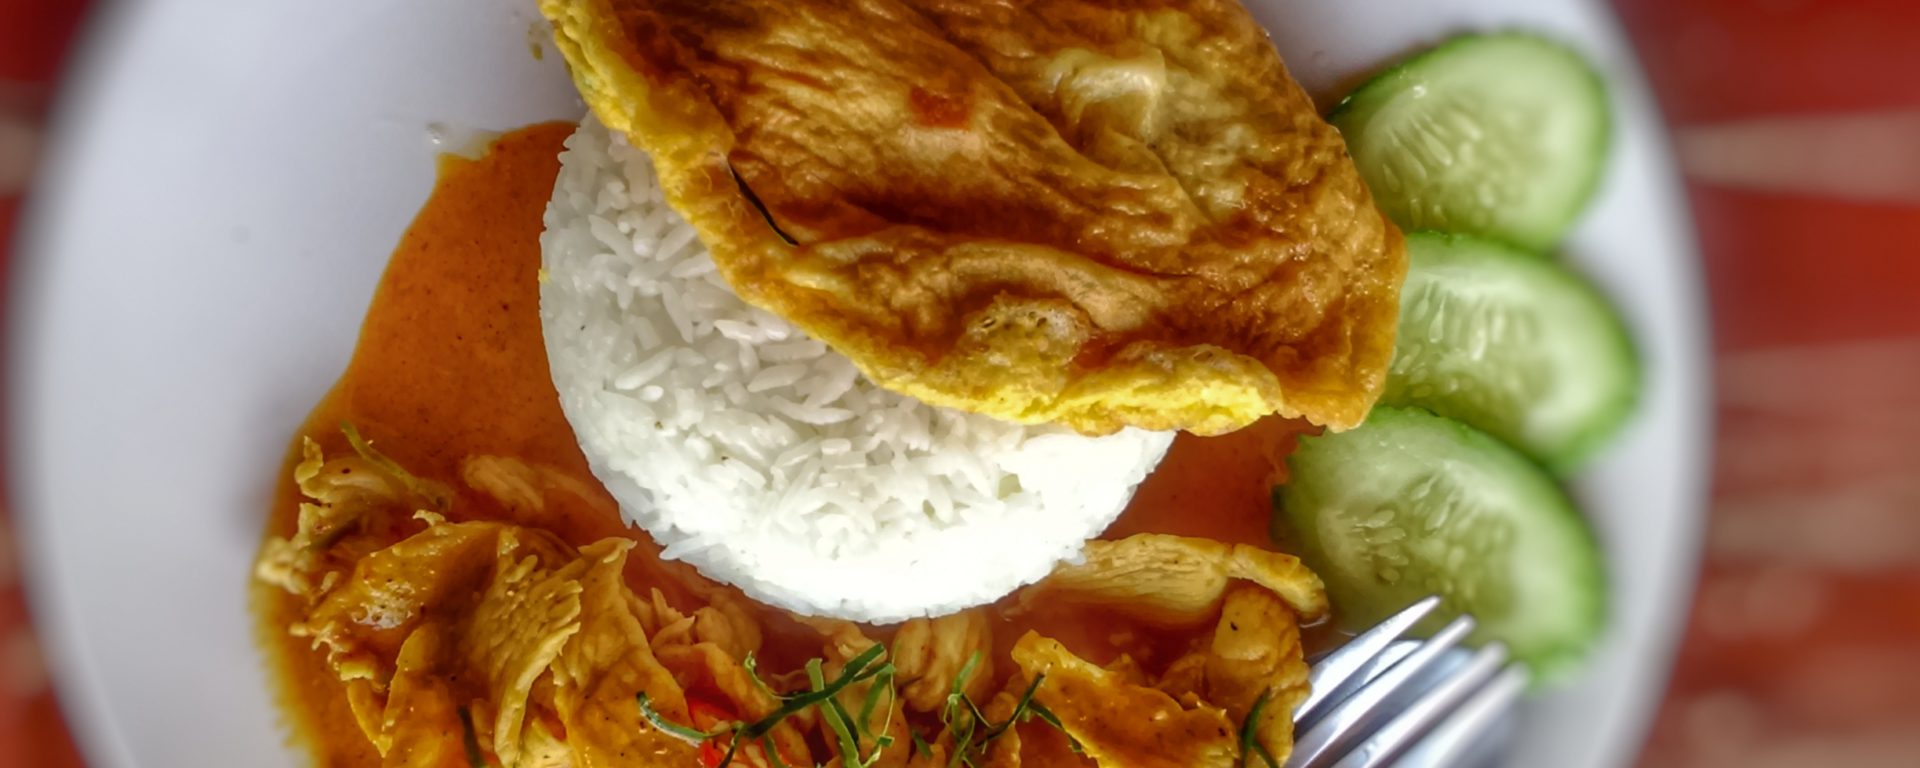 Penang Curry mit Reis und Omelette als Topping